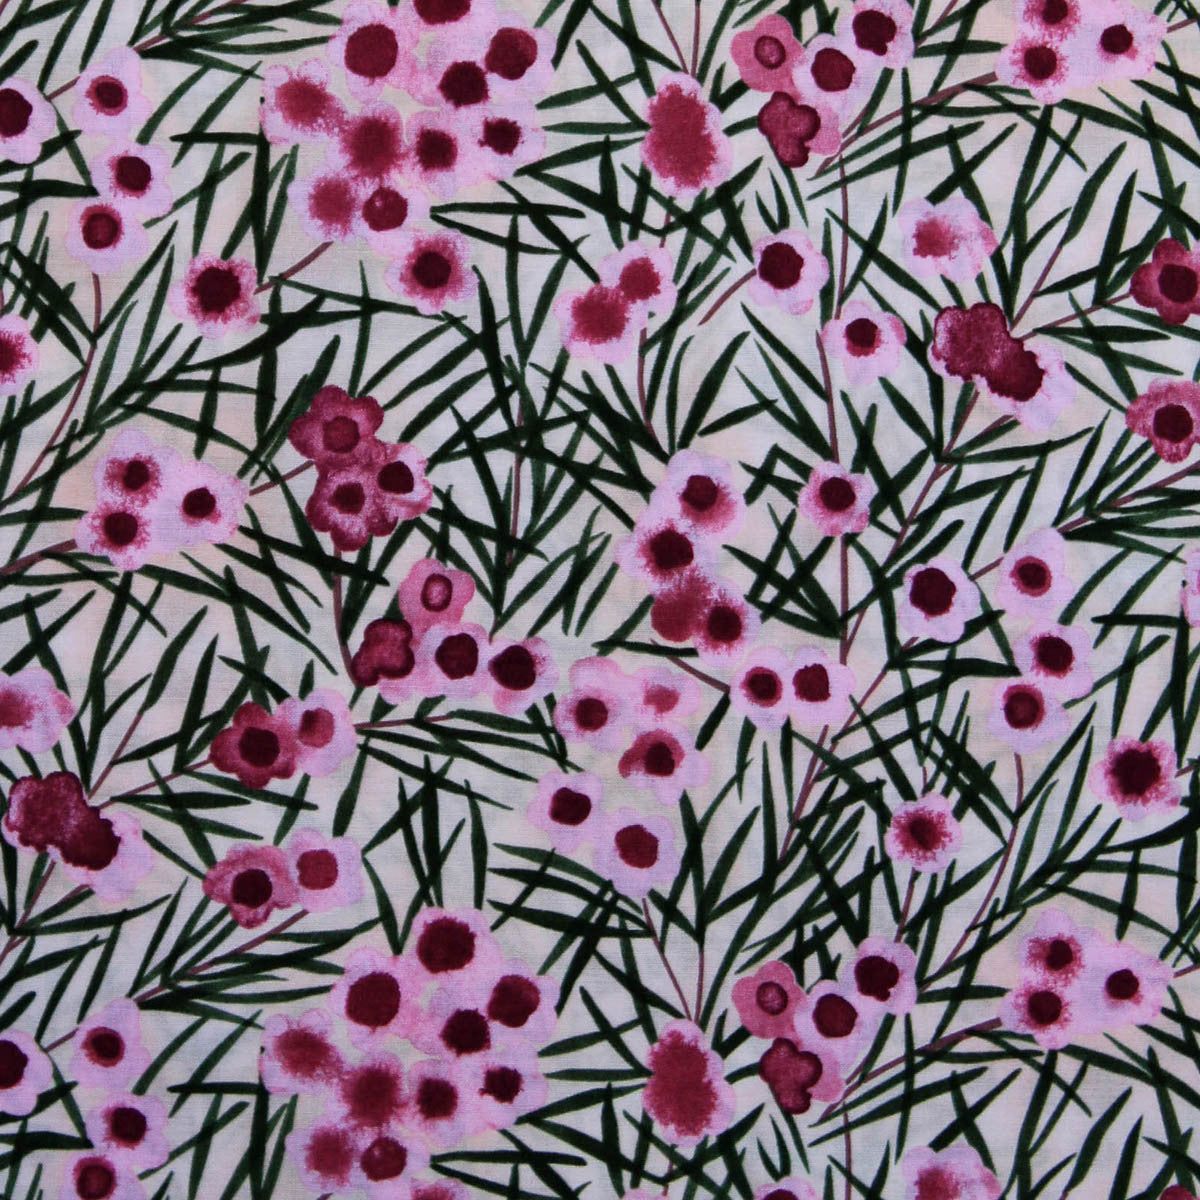 WAX FLOWER PINK by Australian Aboriginal Artist NATALIE RYAN